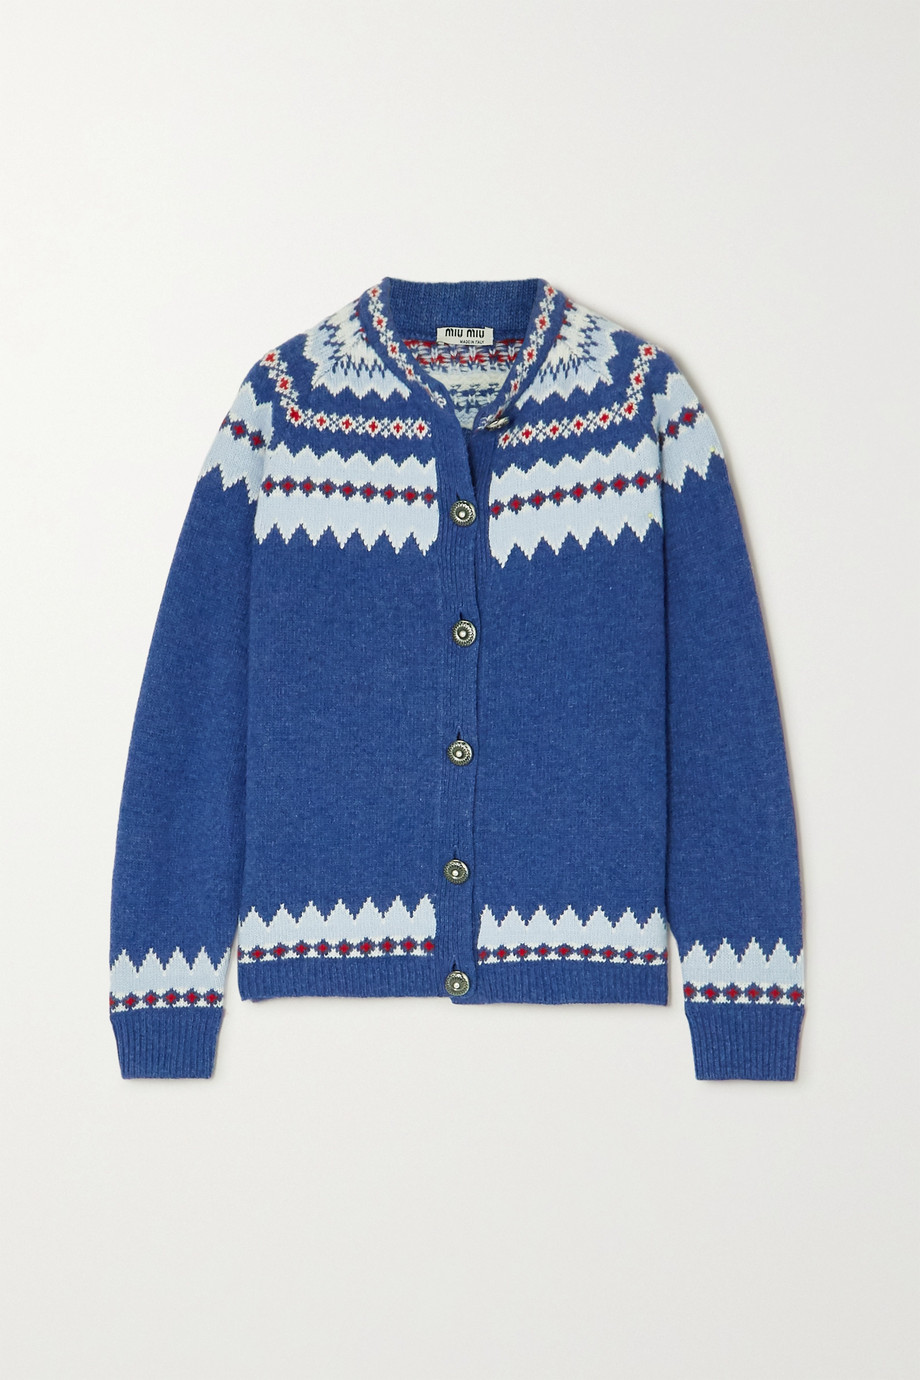 Miu Miu Fair Isle wool cardigan